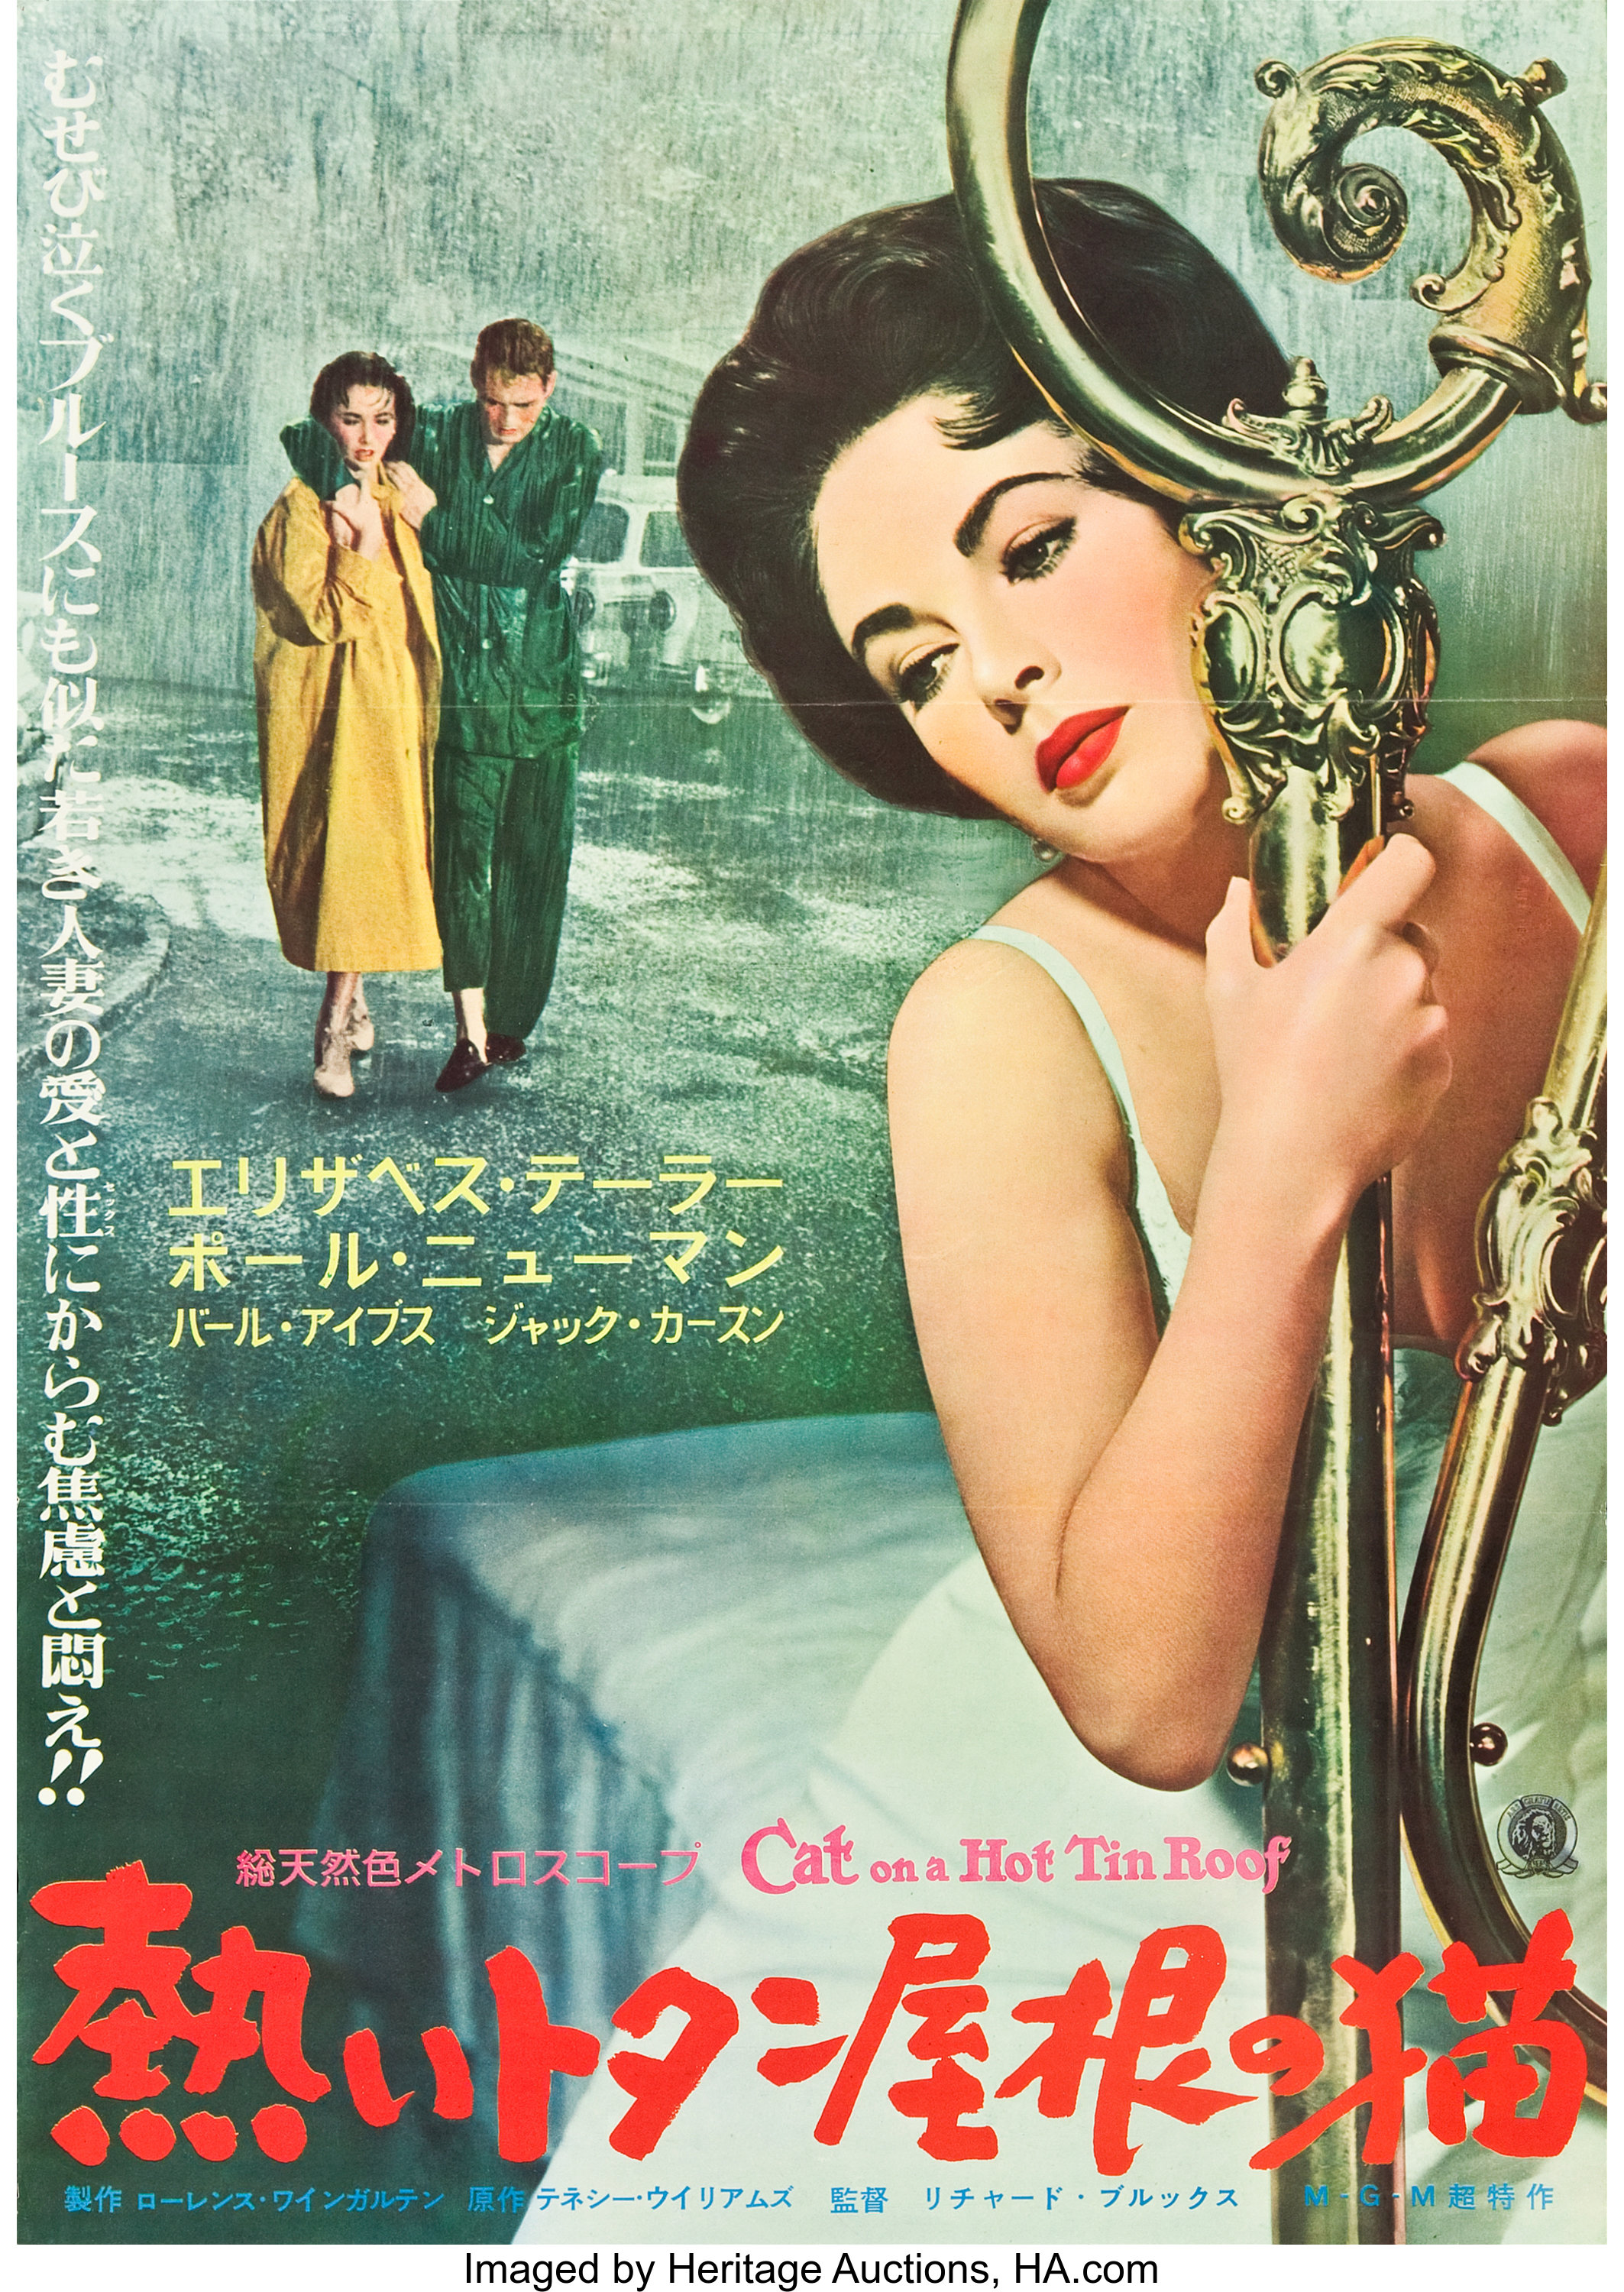 Cat on a Hot Tin Roof MGM, 200. Japanese B20 200